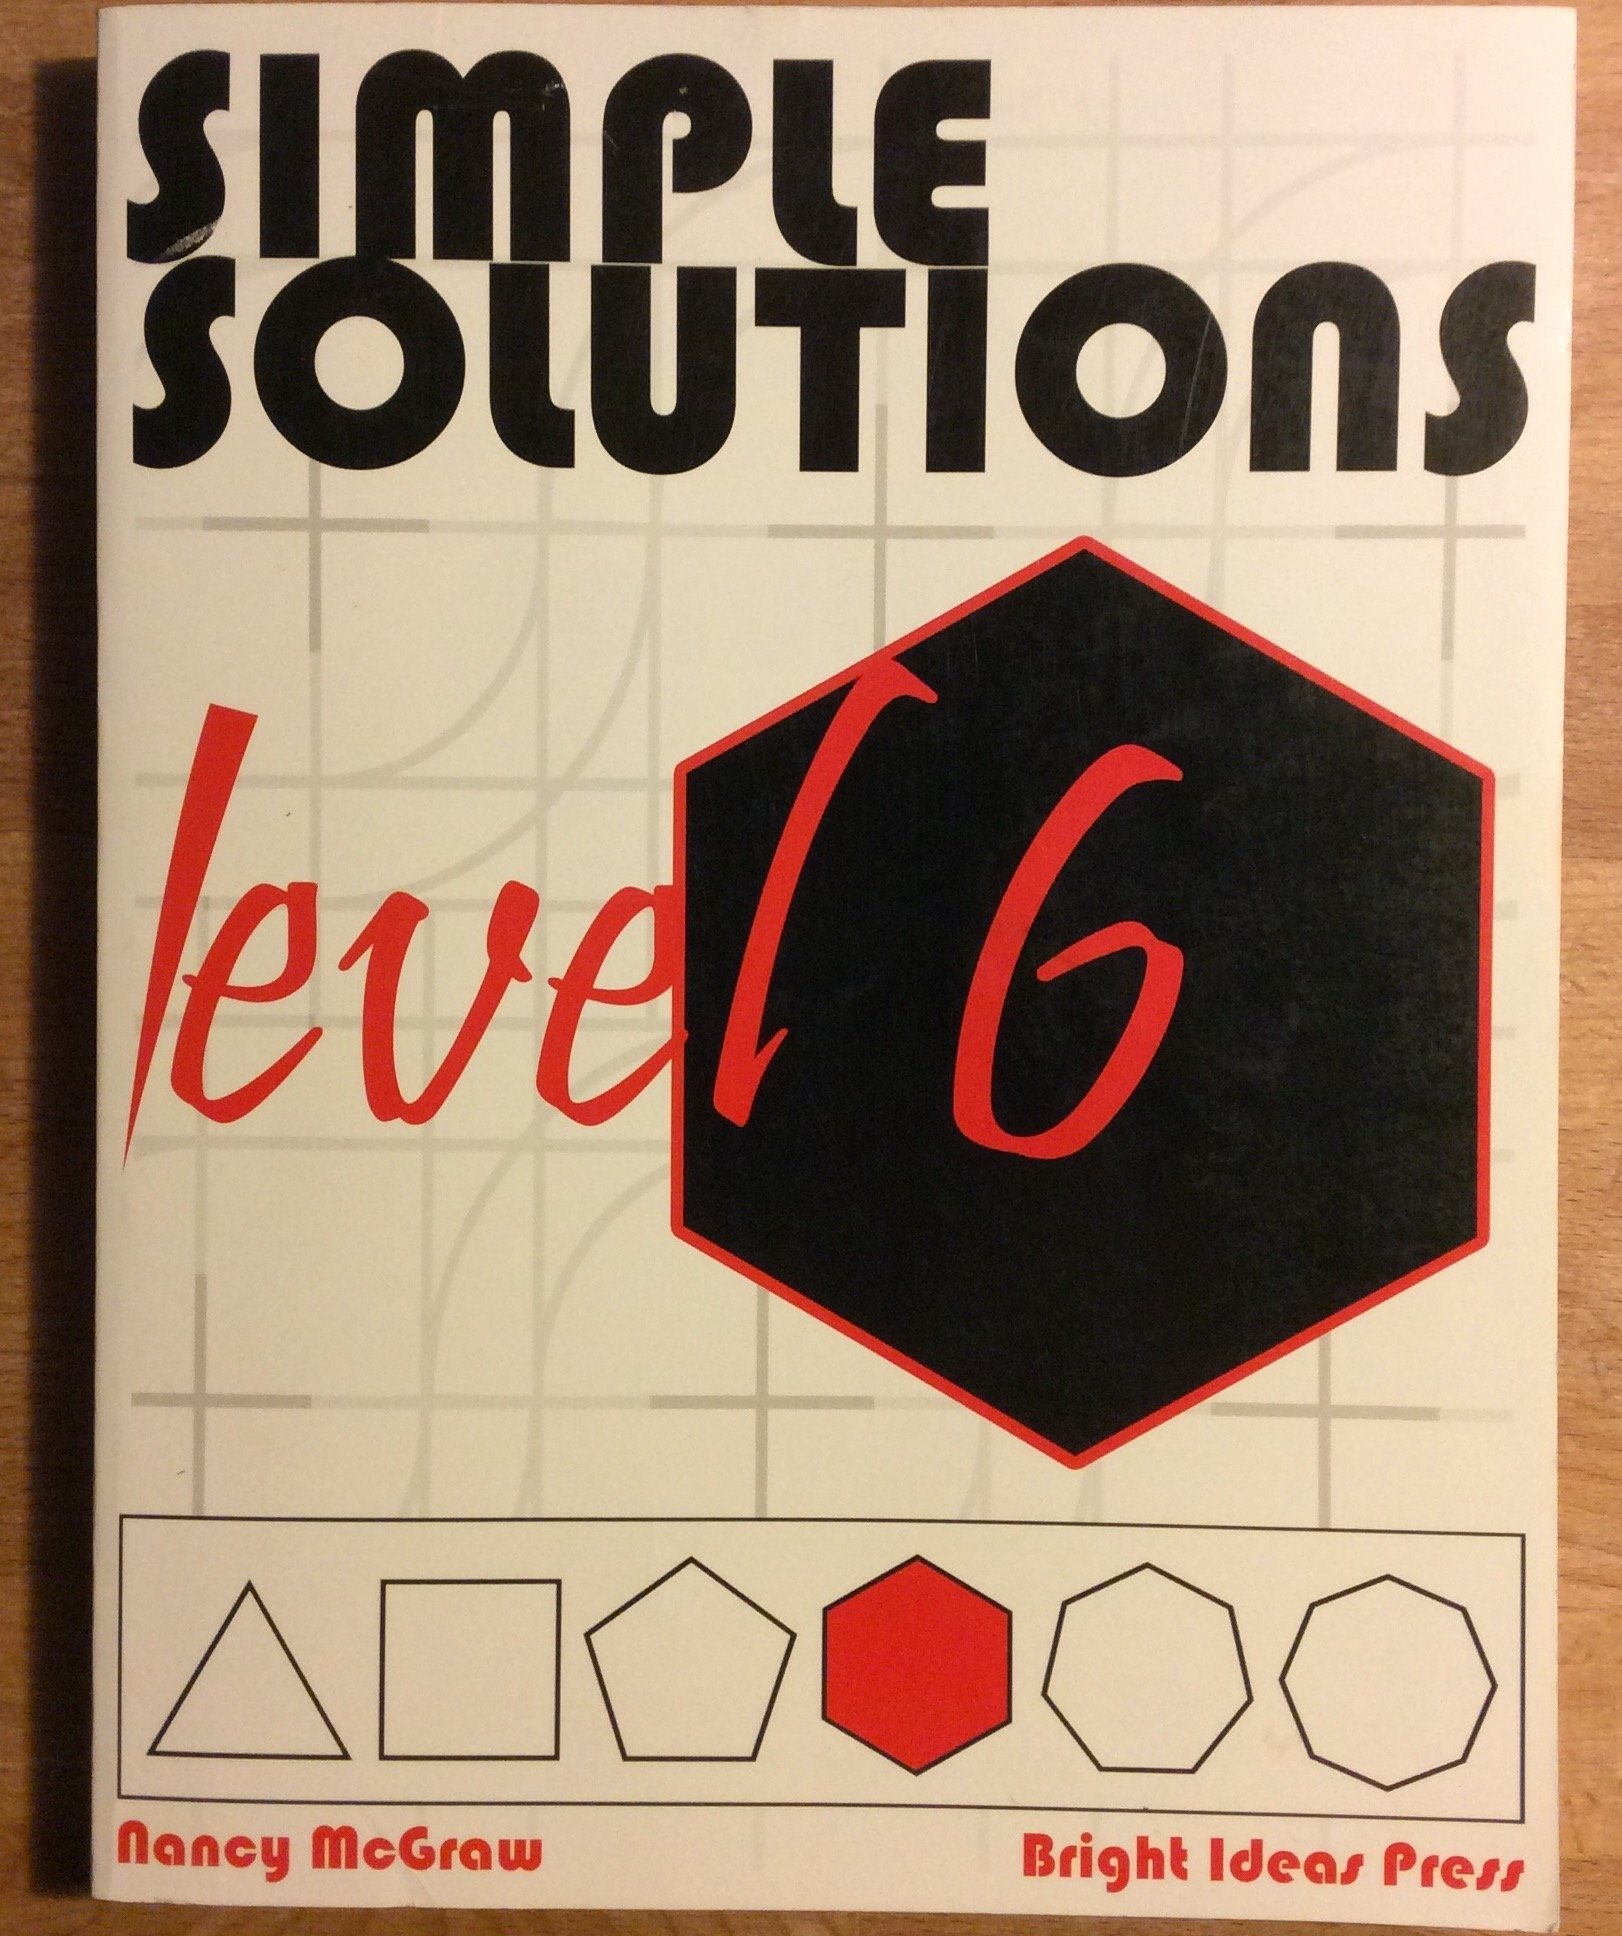 Simple solutions level 6 math 9780972873031 amazon books fandeluxe Image collections